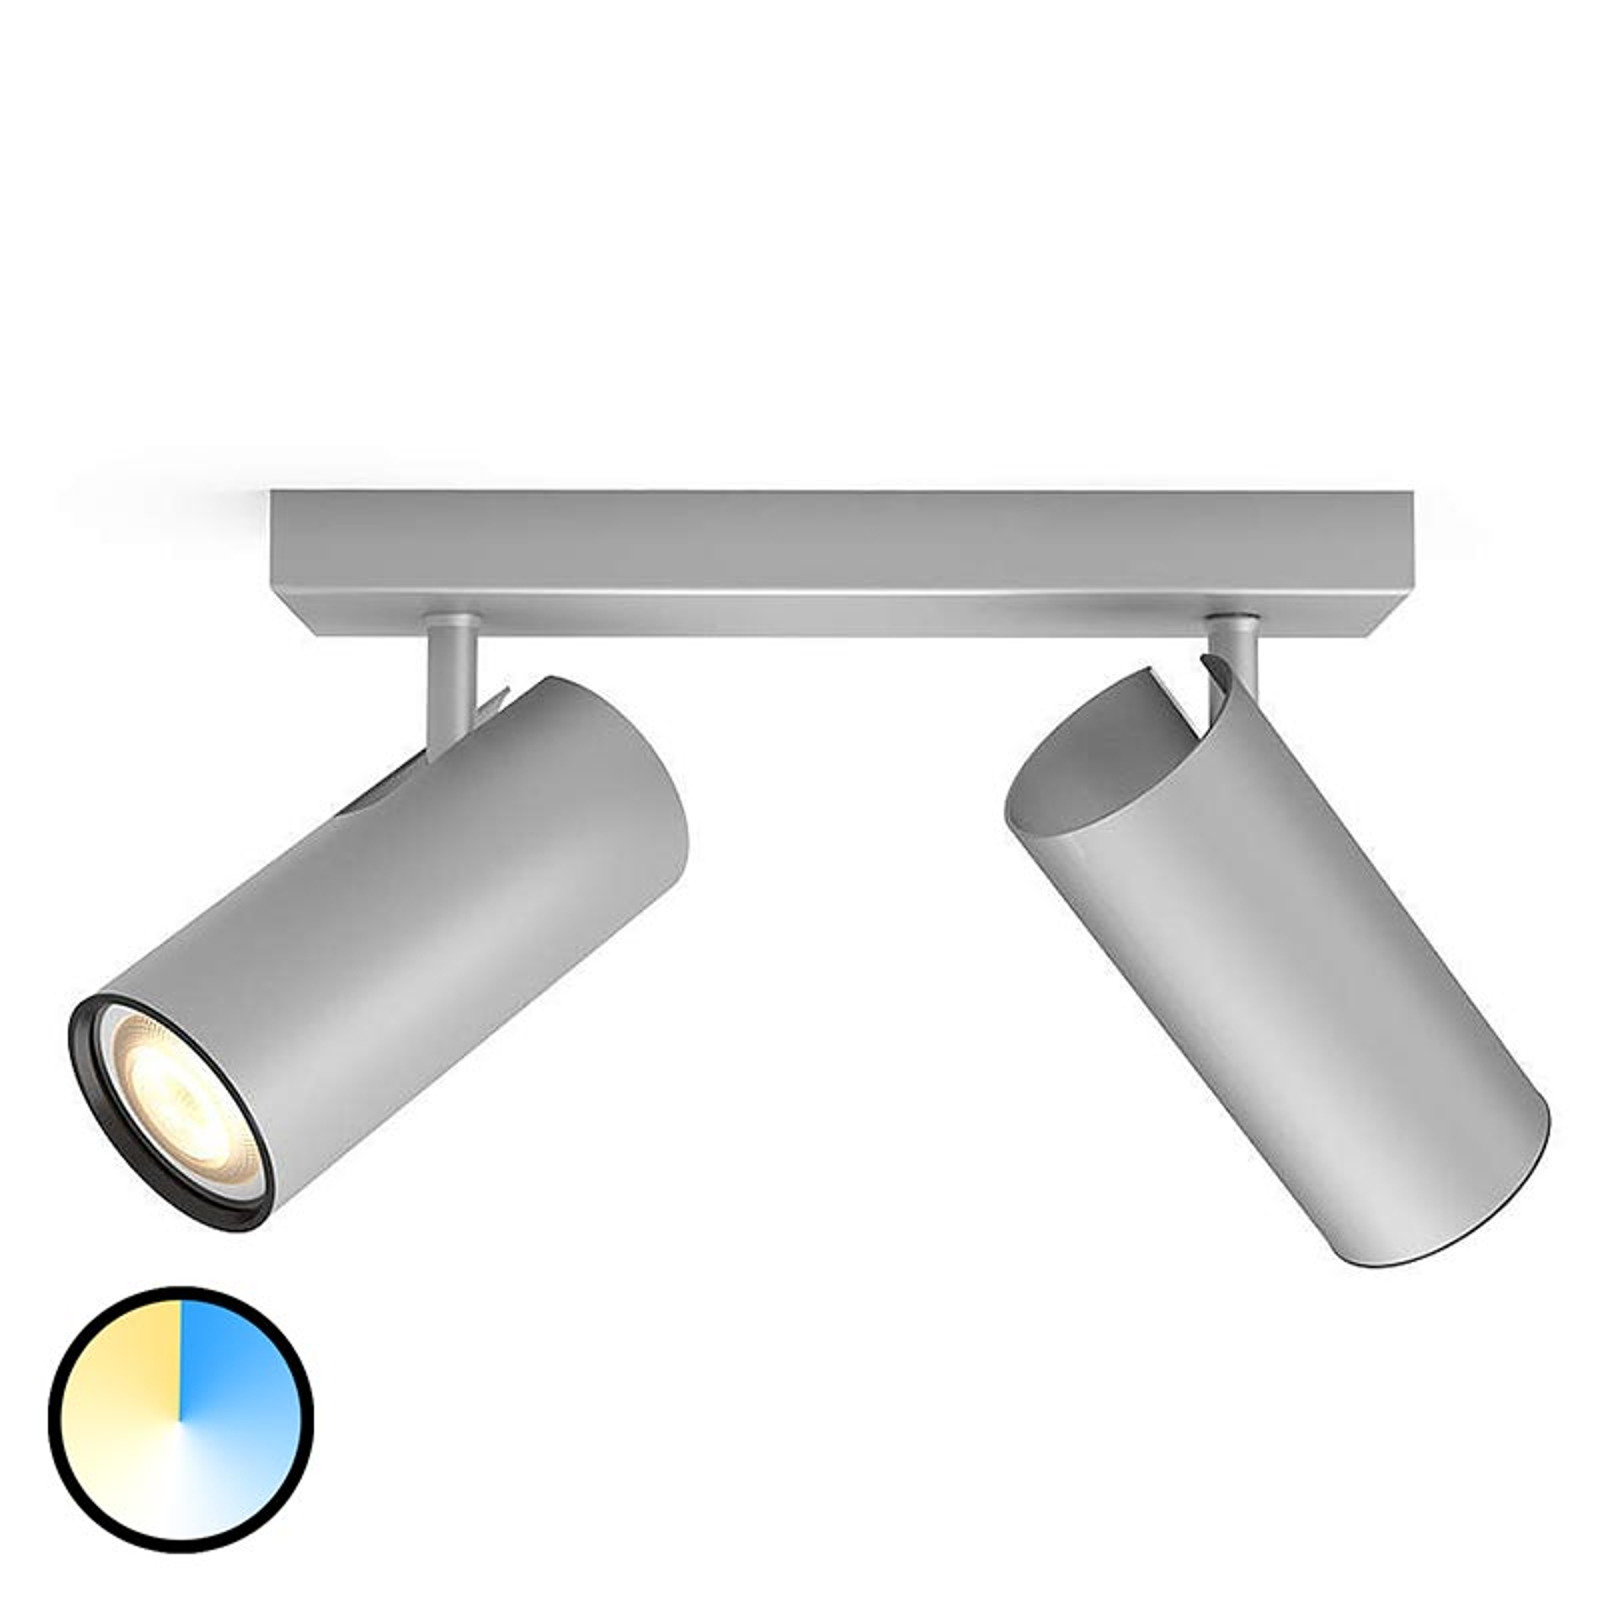 Philips Hue Buratto LED-Spot alu 2fl Dimmschalter